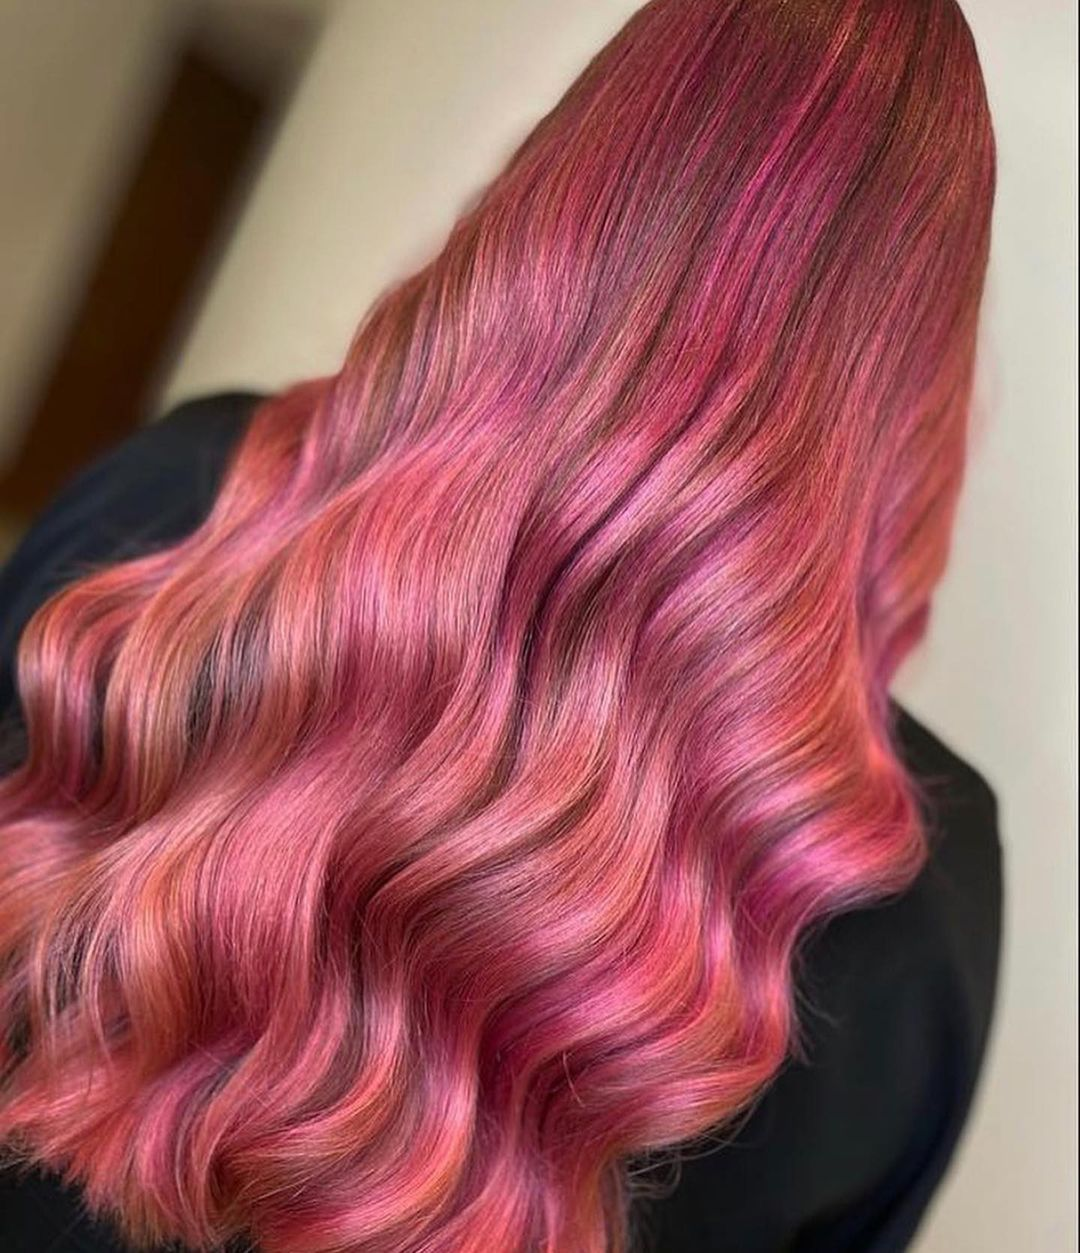 Summer hair colours at house of colour hairdressers in Dublin